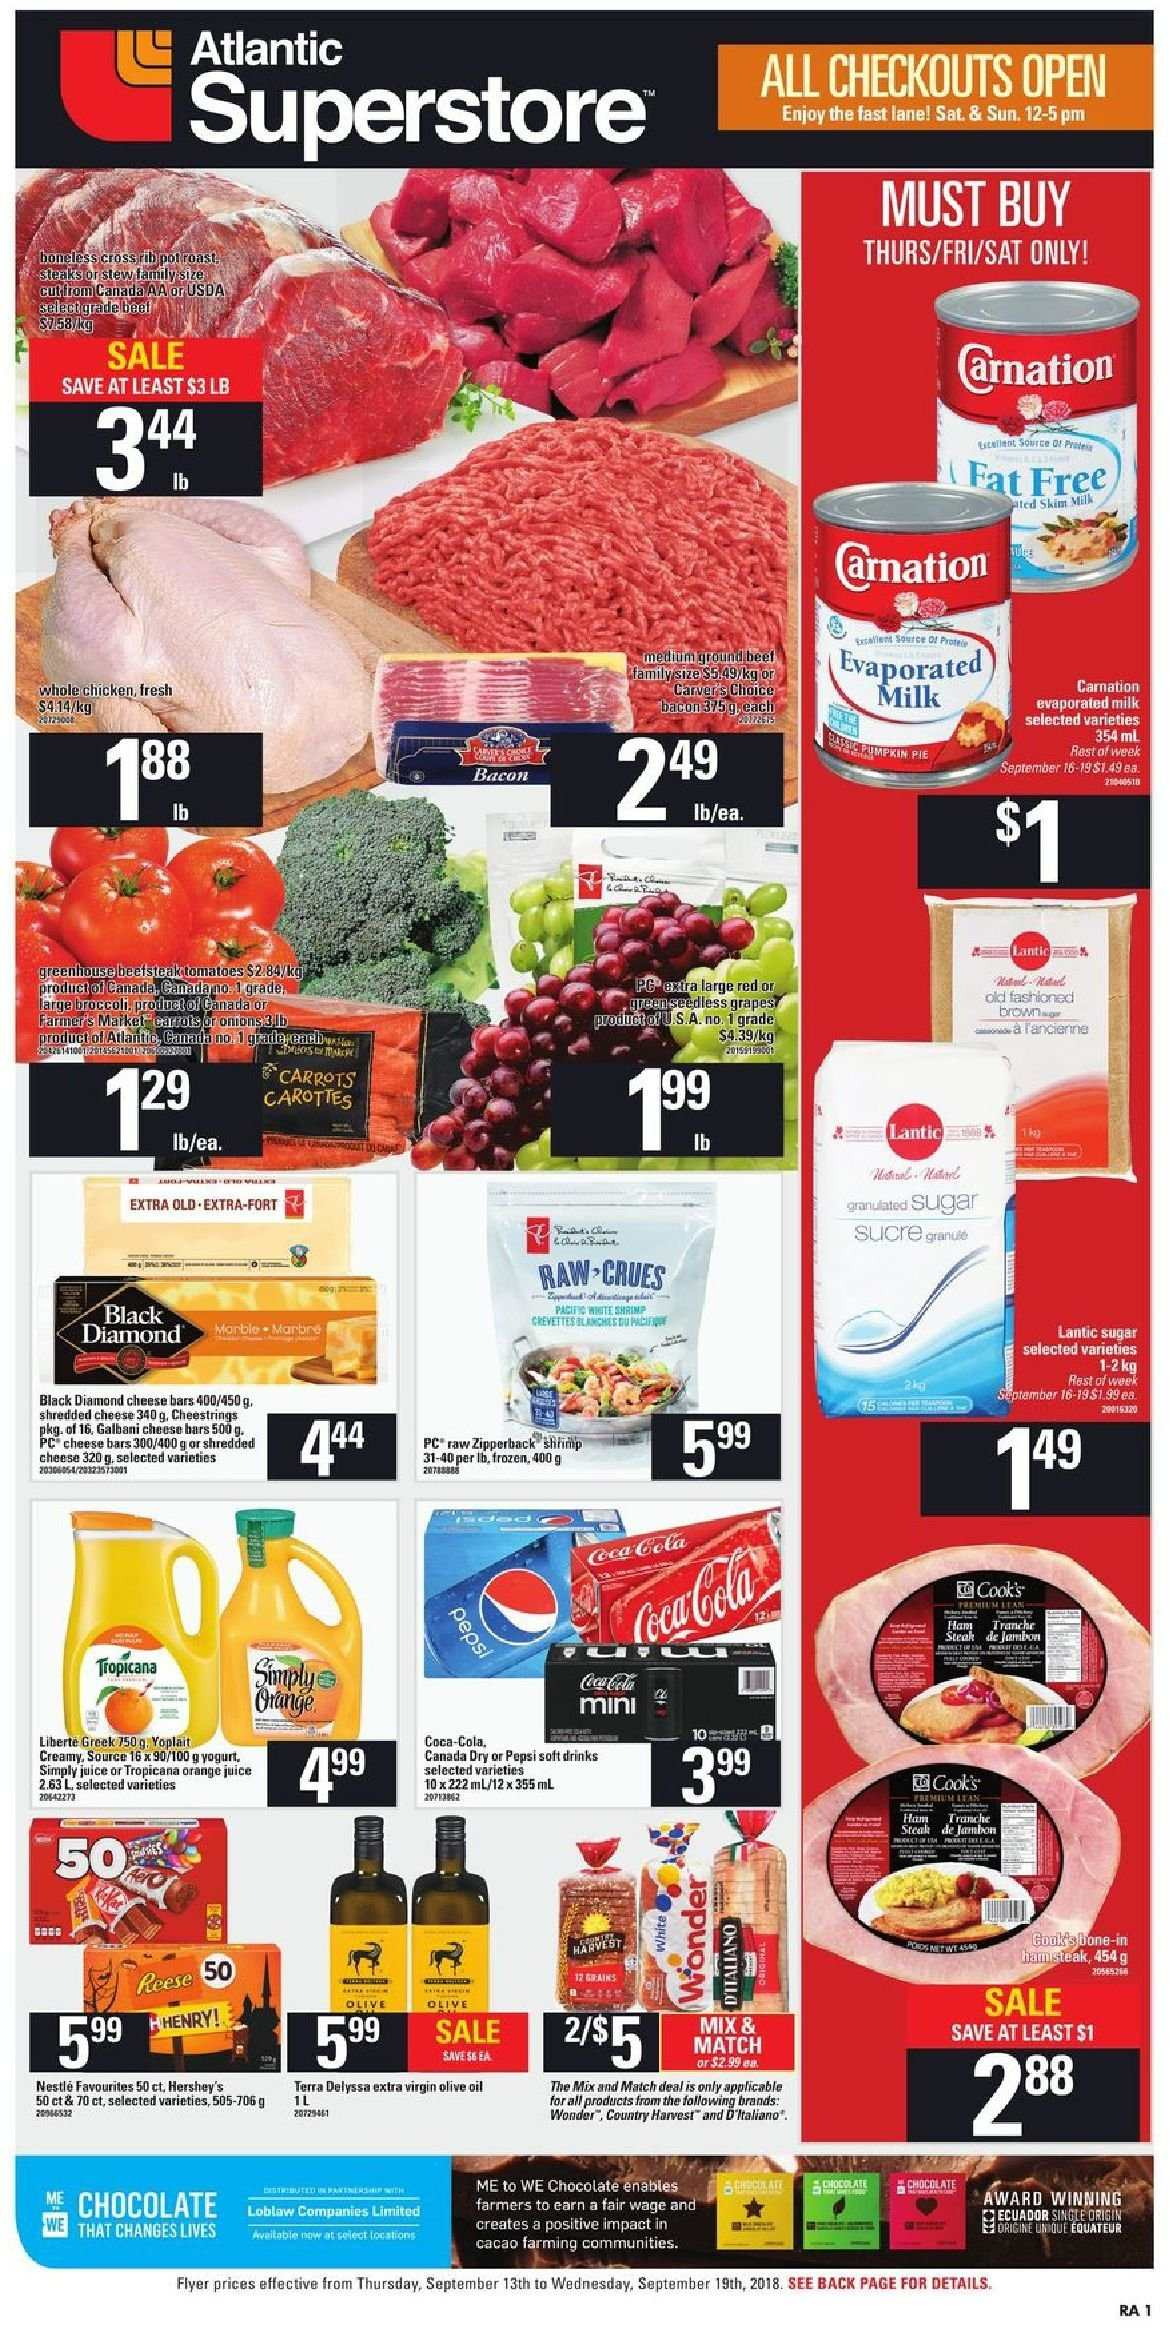 Atlantic Superstore Flyer - September 13, 2018 - September 19, 2018 - Sales products - bacon, canada dry, carrots, evaporated milk, extra virgin olive oil, frozen, milk, nestlé, shredded cheese, sugar, whole chicken, pot, chicken, pepsi, olive oil, onion, orange juice, steak, cheese, juice, chocolat, jambon, carotte, orange, tropicana. Page 1.